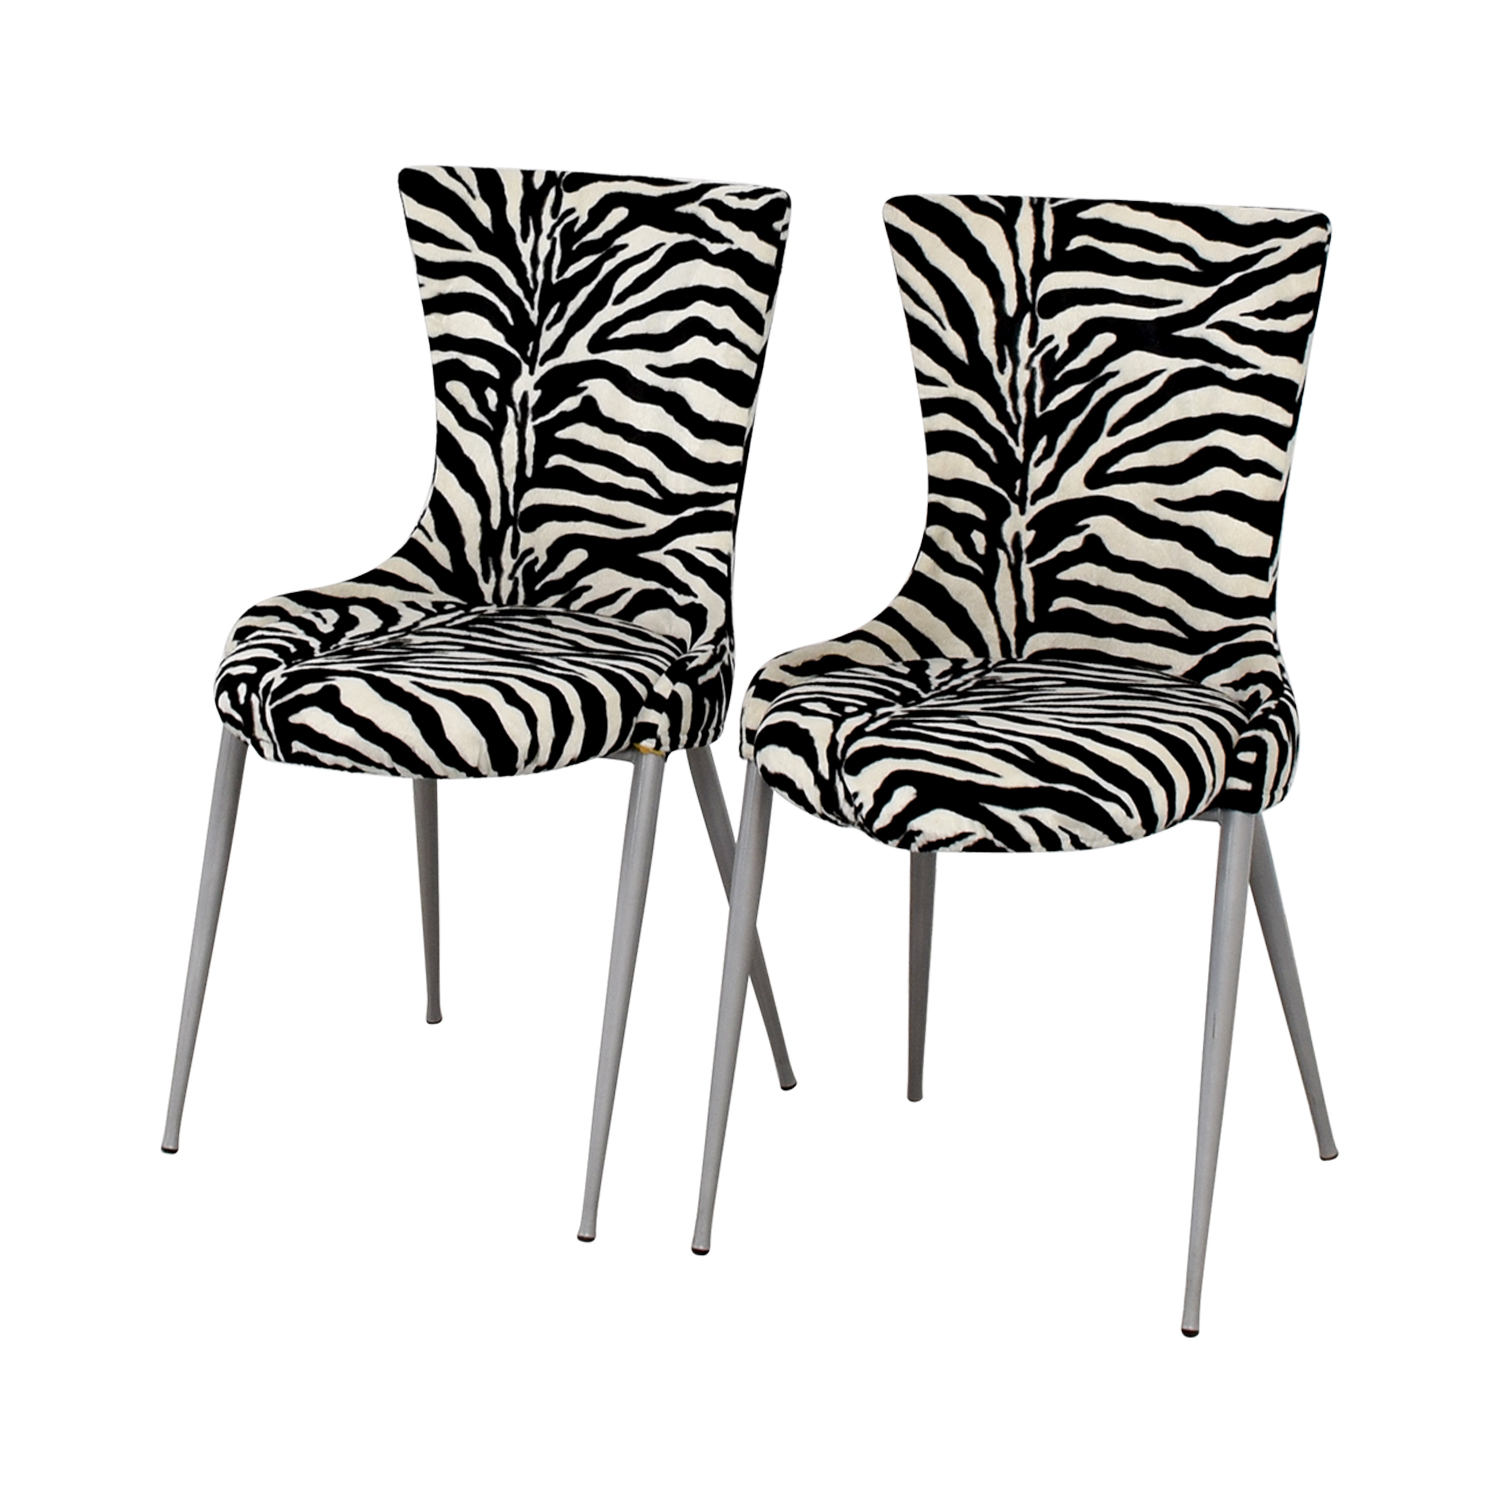 European Furniture Company Contemporary Zebra Dining Chairs / Dining Chairs